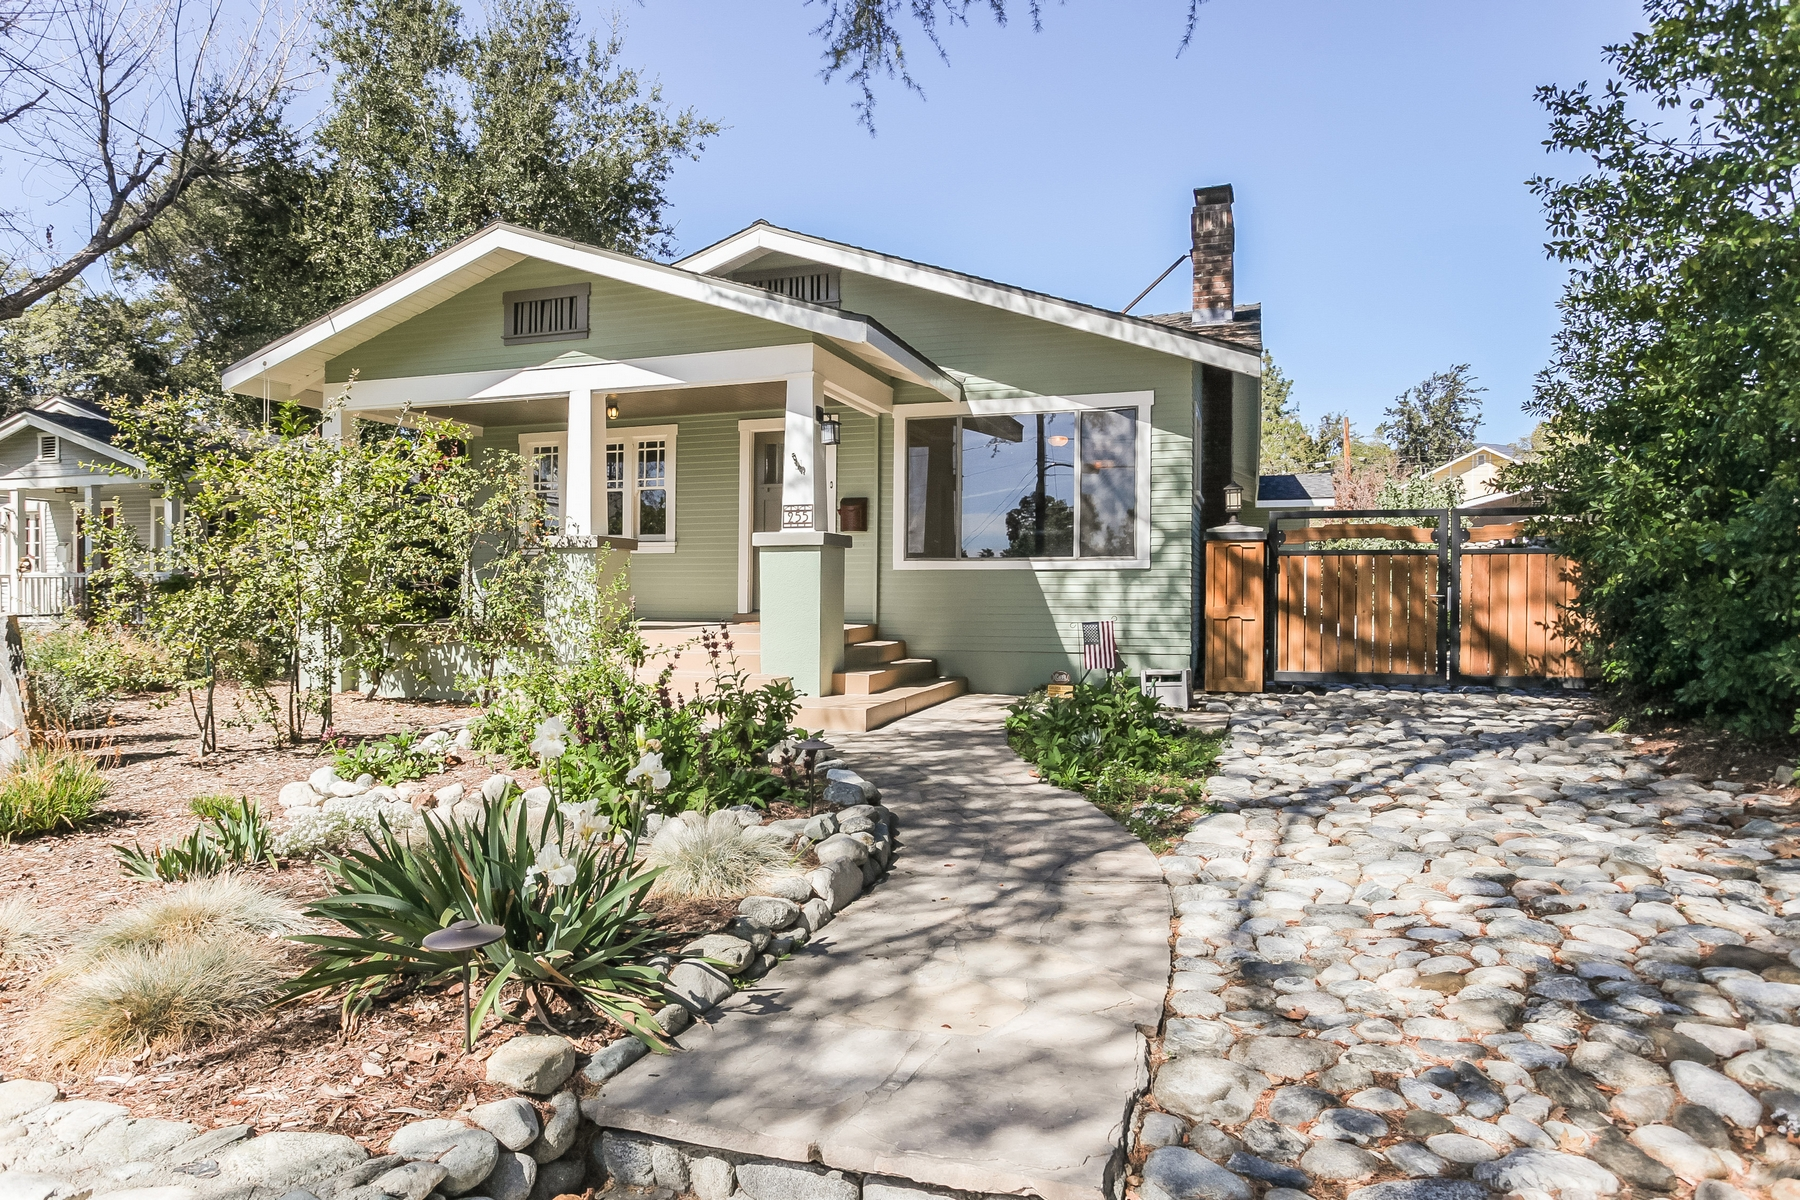 Single Family Home for Sale at 255 W 10th St, Claremont 91711 255 W 10th St Claremont, California 91711 United States